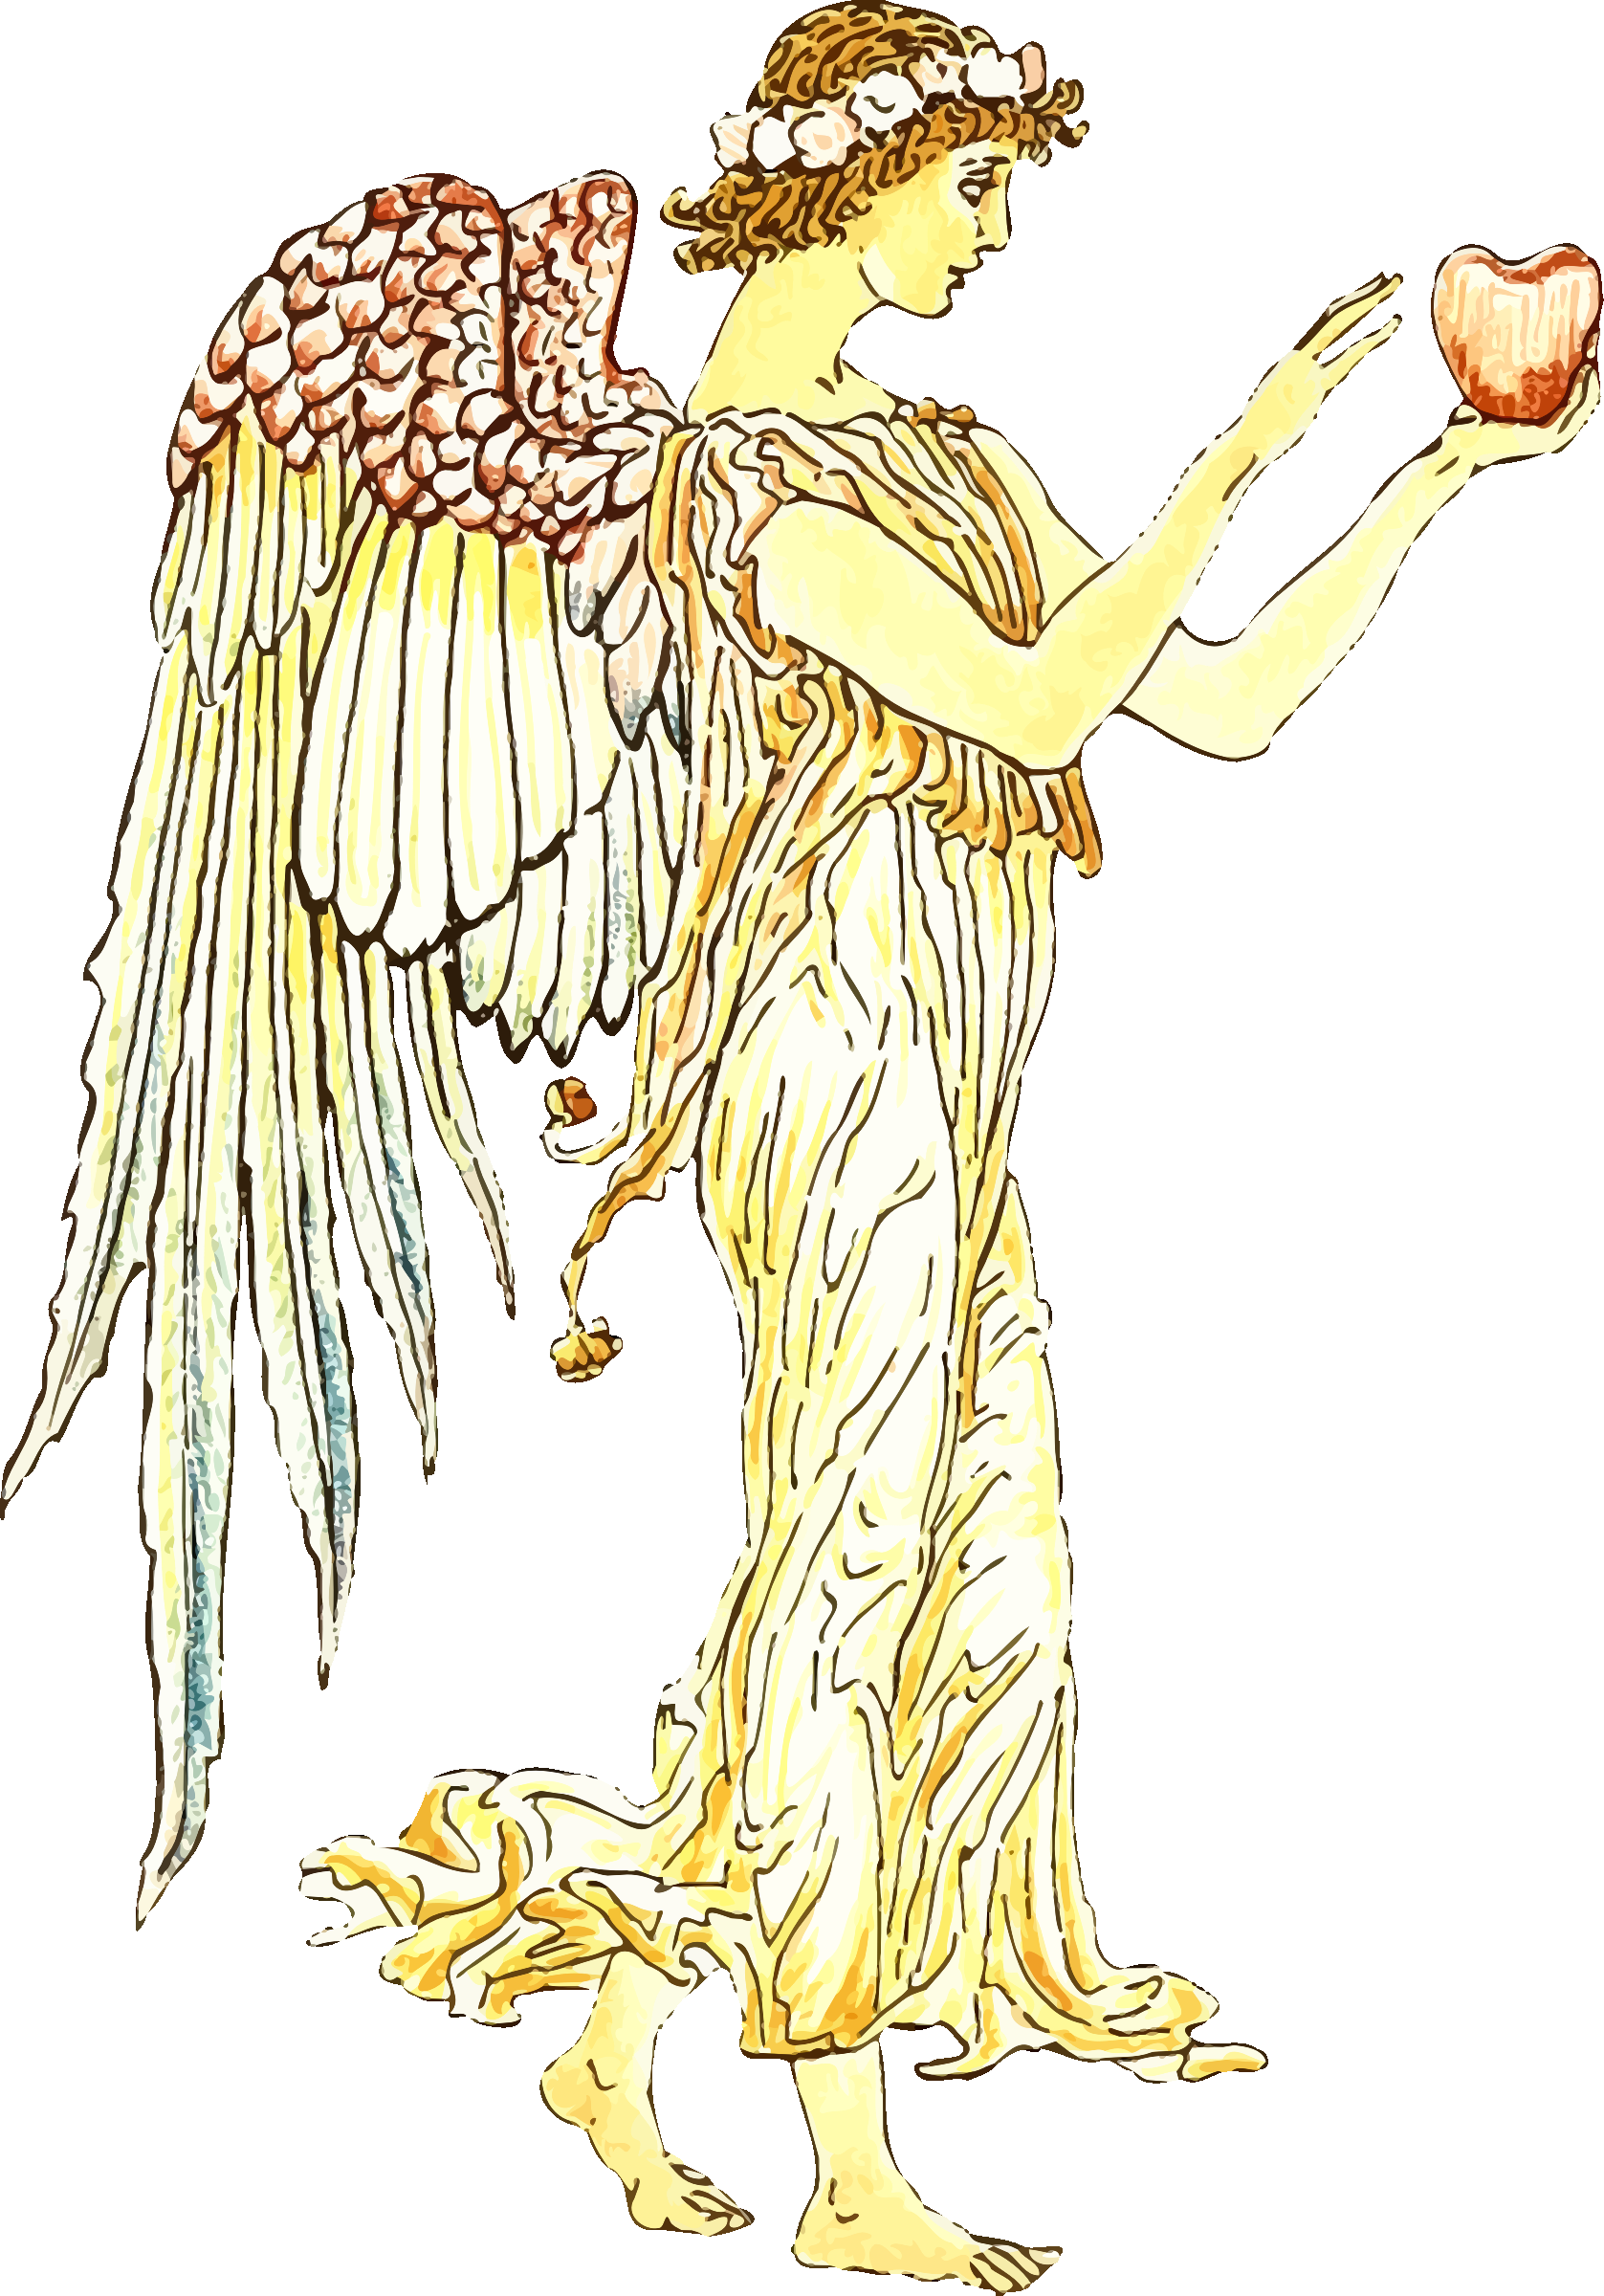 Angel with apple by Firkin